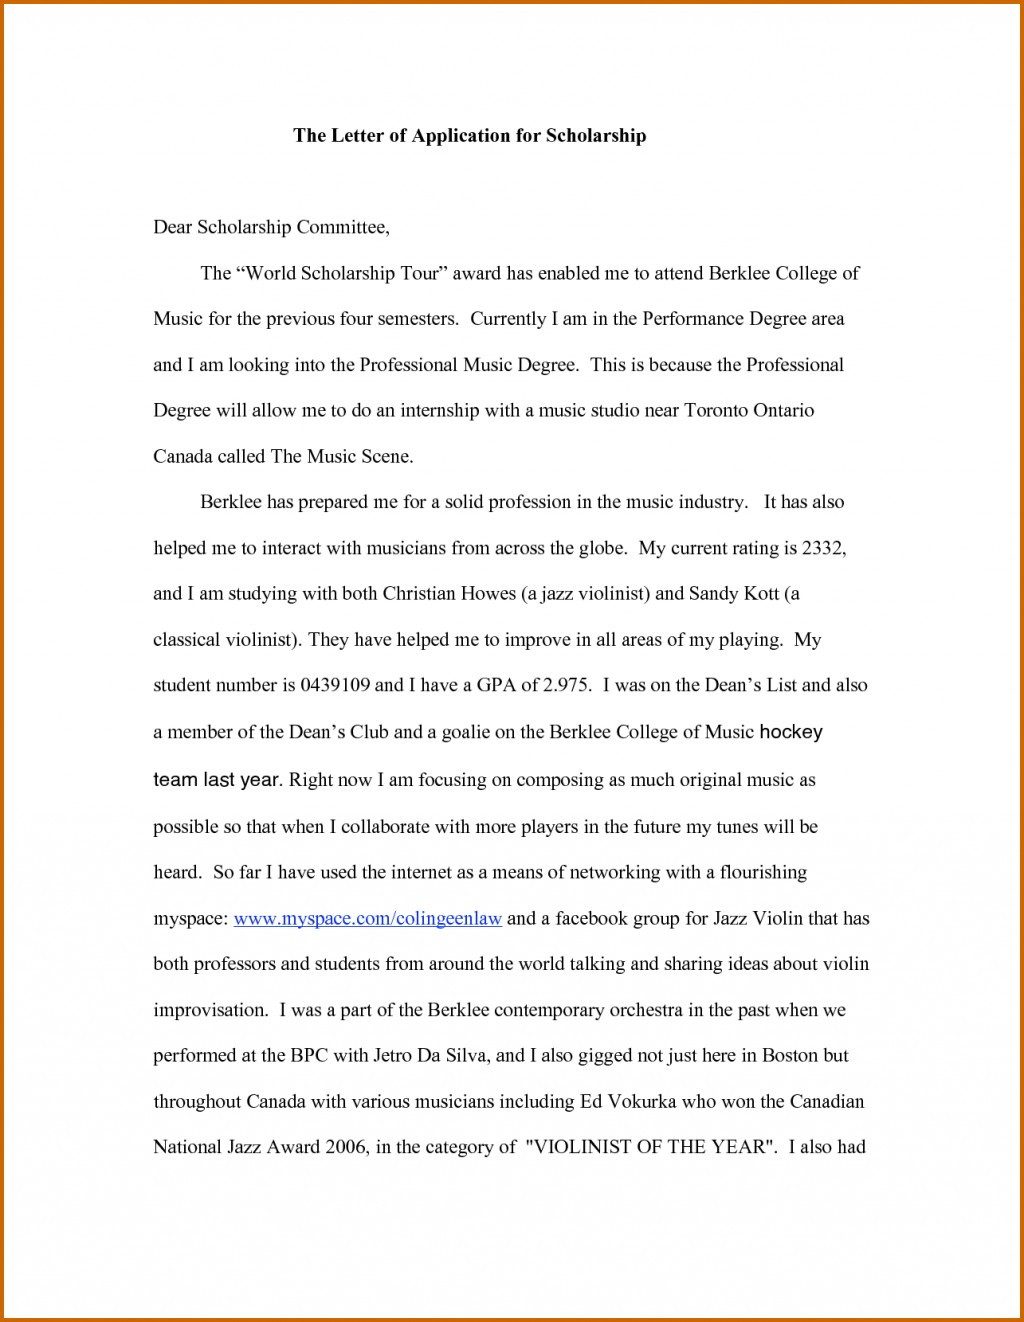 004 How To Write Scholarship Essay Example Me On Brexit Examples Who Am I Unbelievable A About Why You Deserve It Good Yourself Format Large